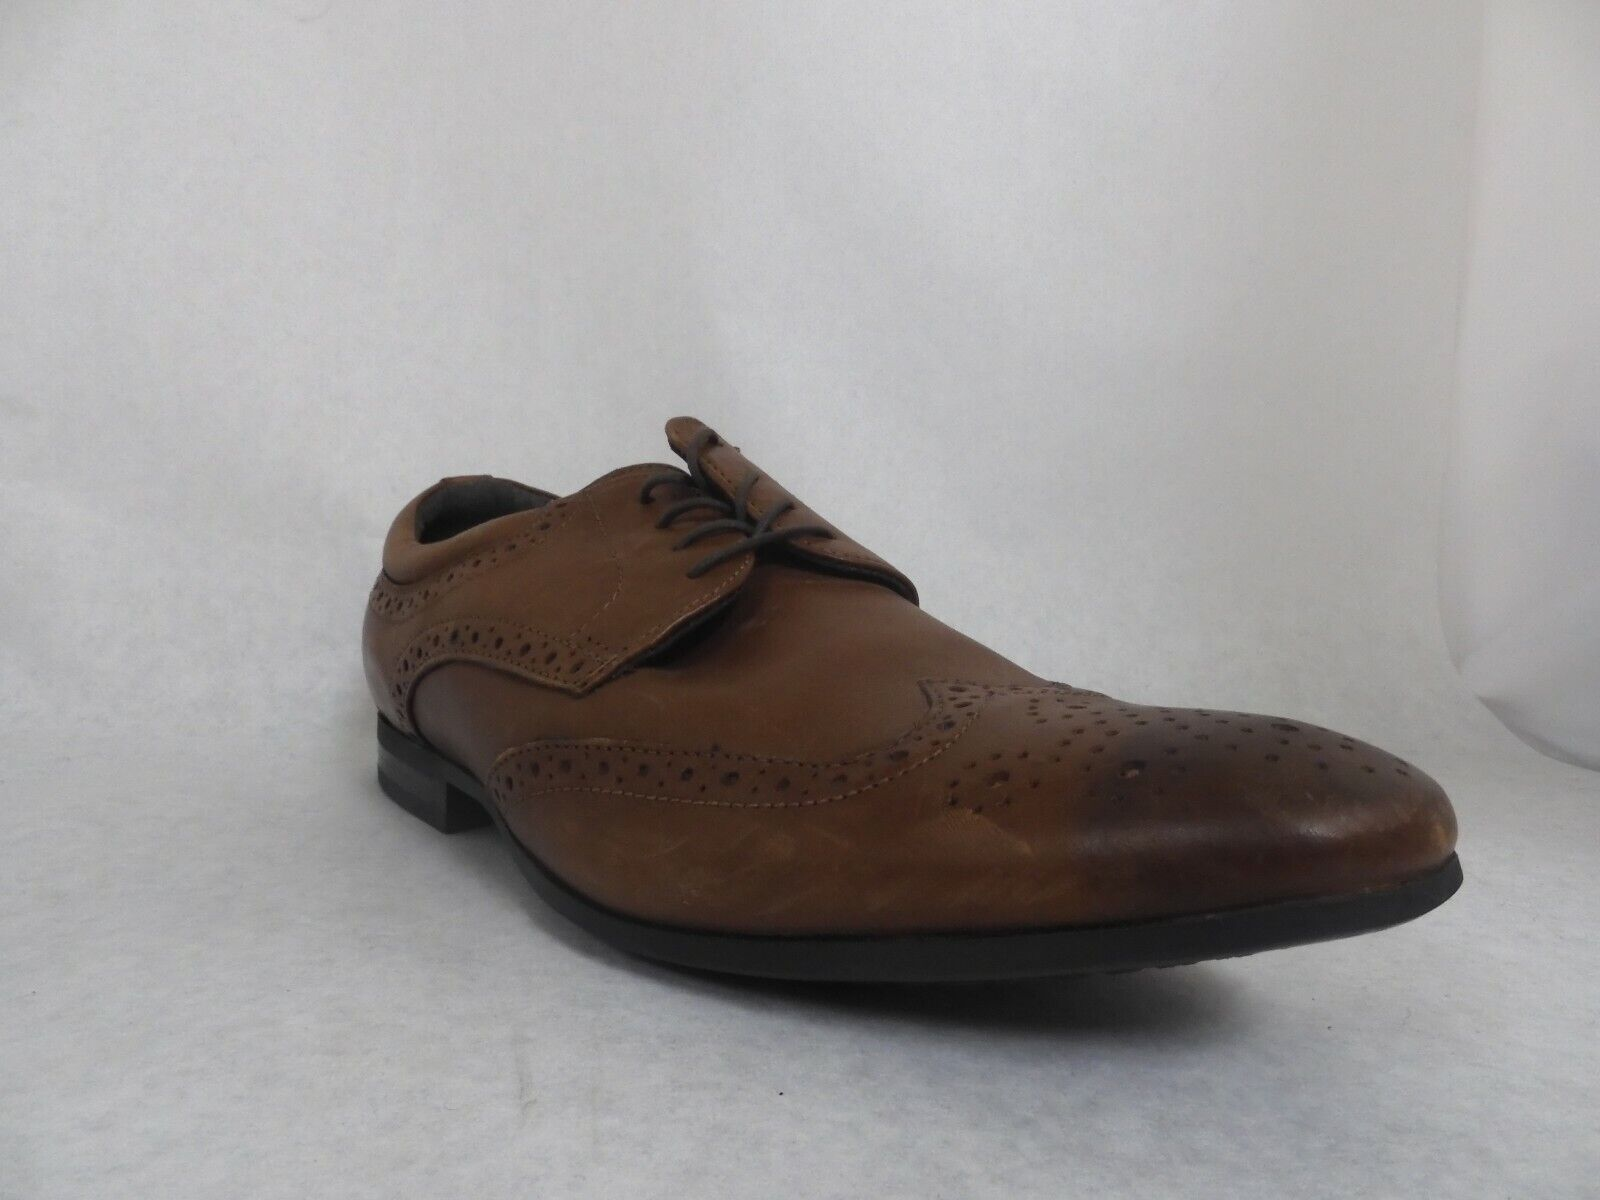 Kenneth Cole Reaction Zeke Brown Leather Wingtip Oxfords Men's Size 12